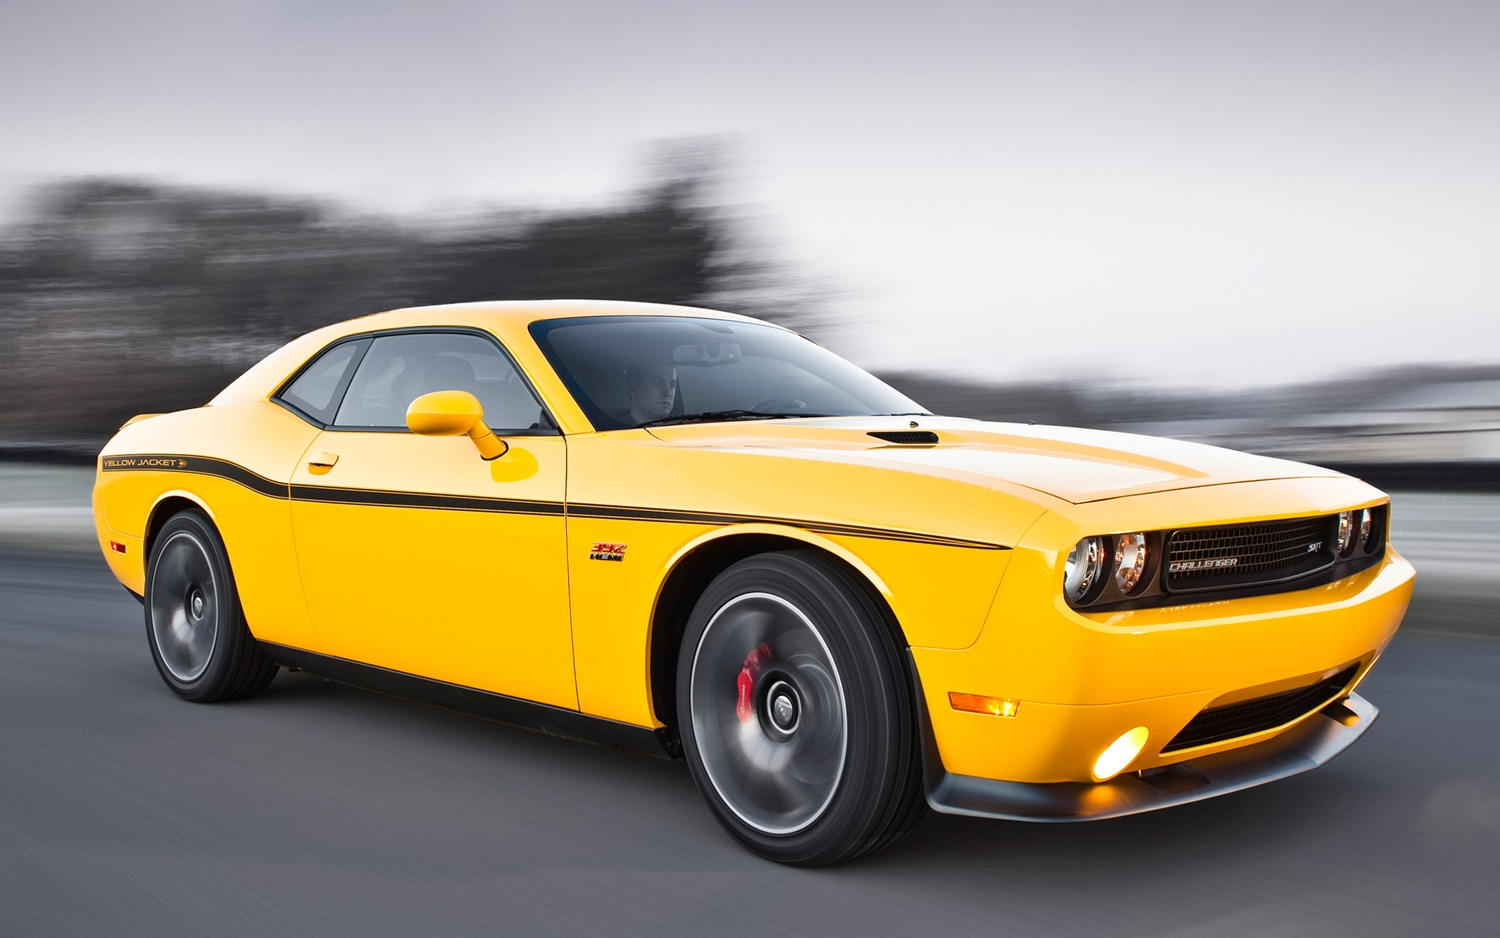 2012 Dodge Challenger SRT8 392 Yellow Jacket Front Three Quarter Motion1